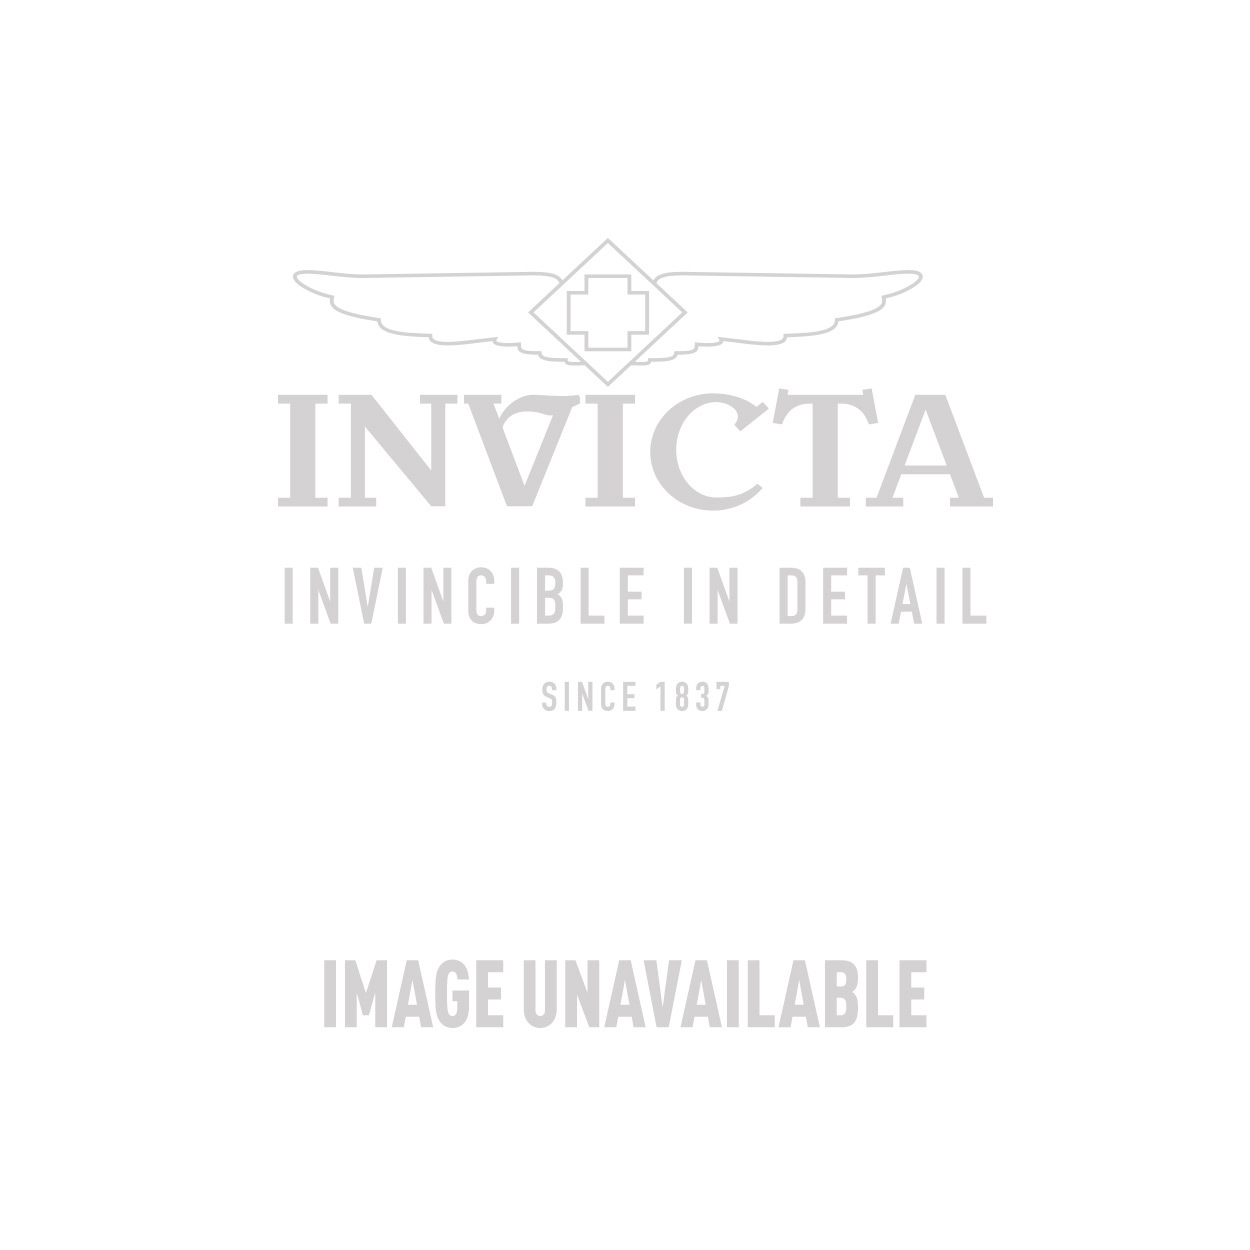 Invicta Speedway Swiss Movement Quartz Watch - Stainless Steel case Stainless Steel band - Model 17713